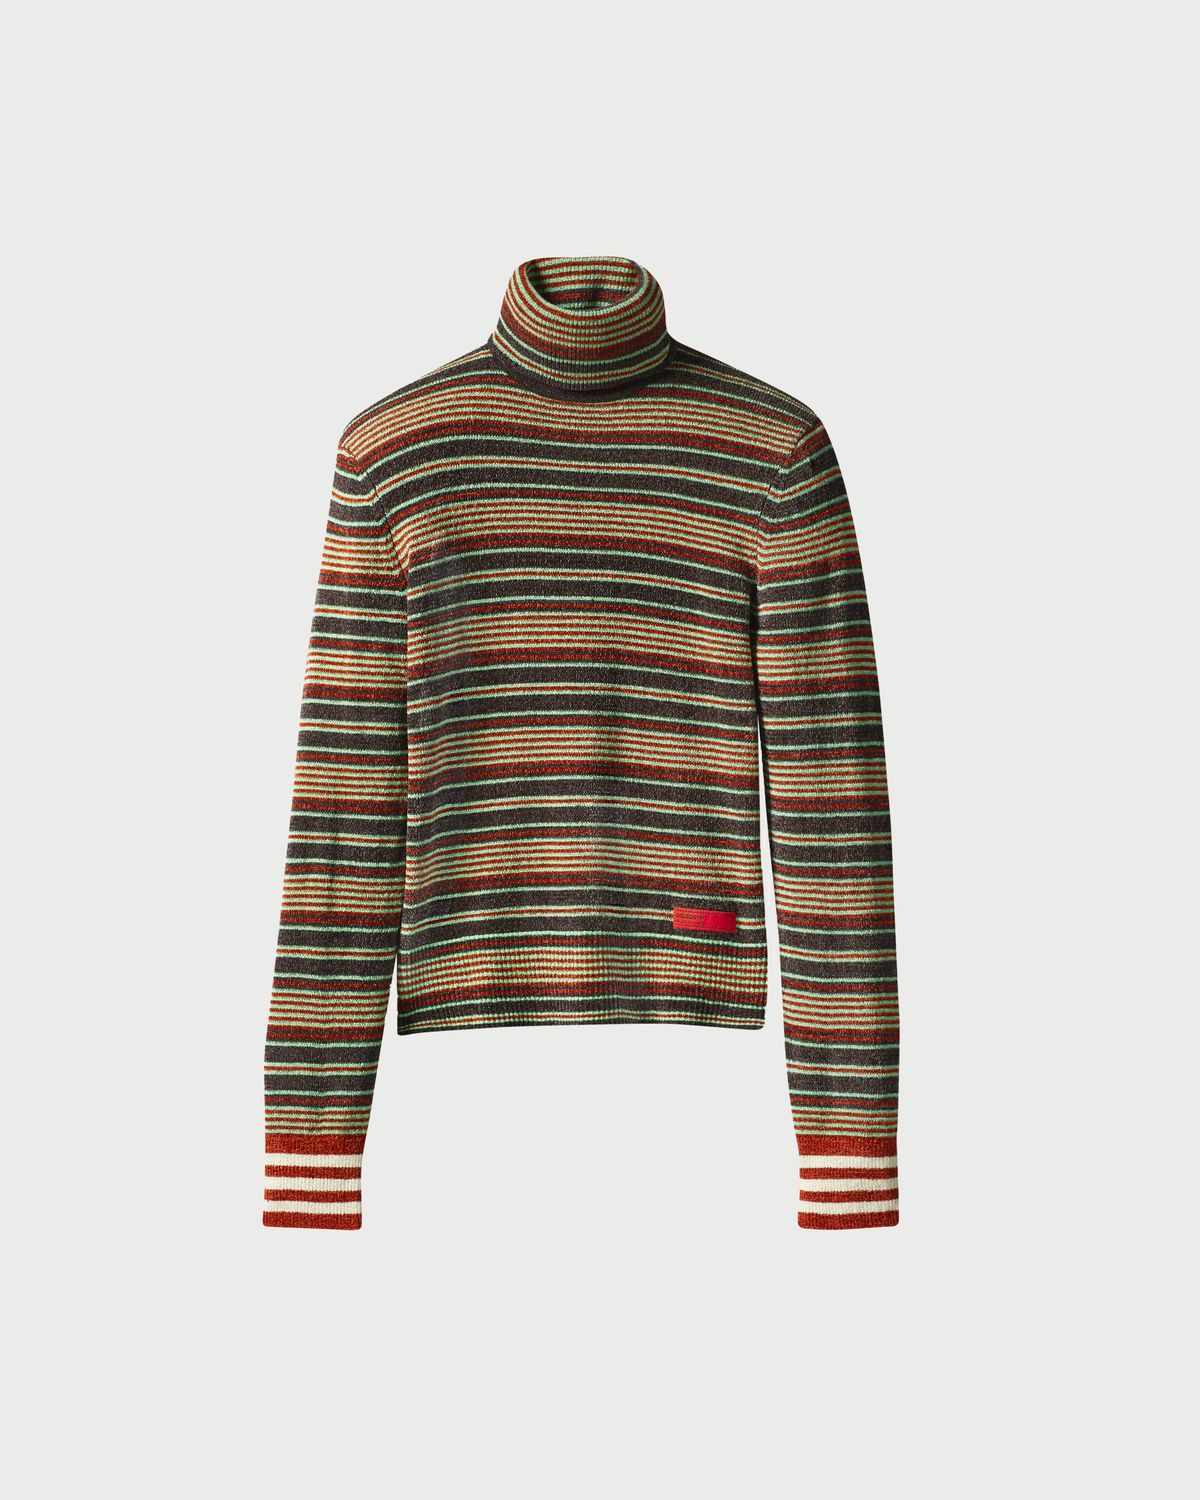 Adidas x Wales Bonner - Roll Neck Multi - Image 1